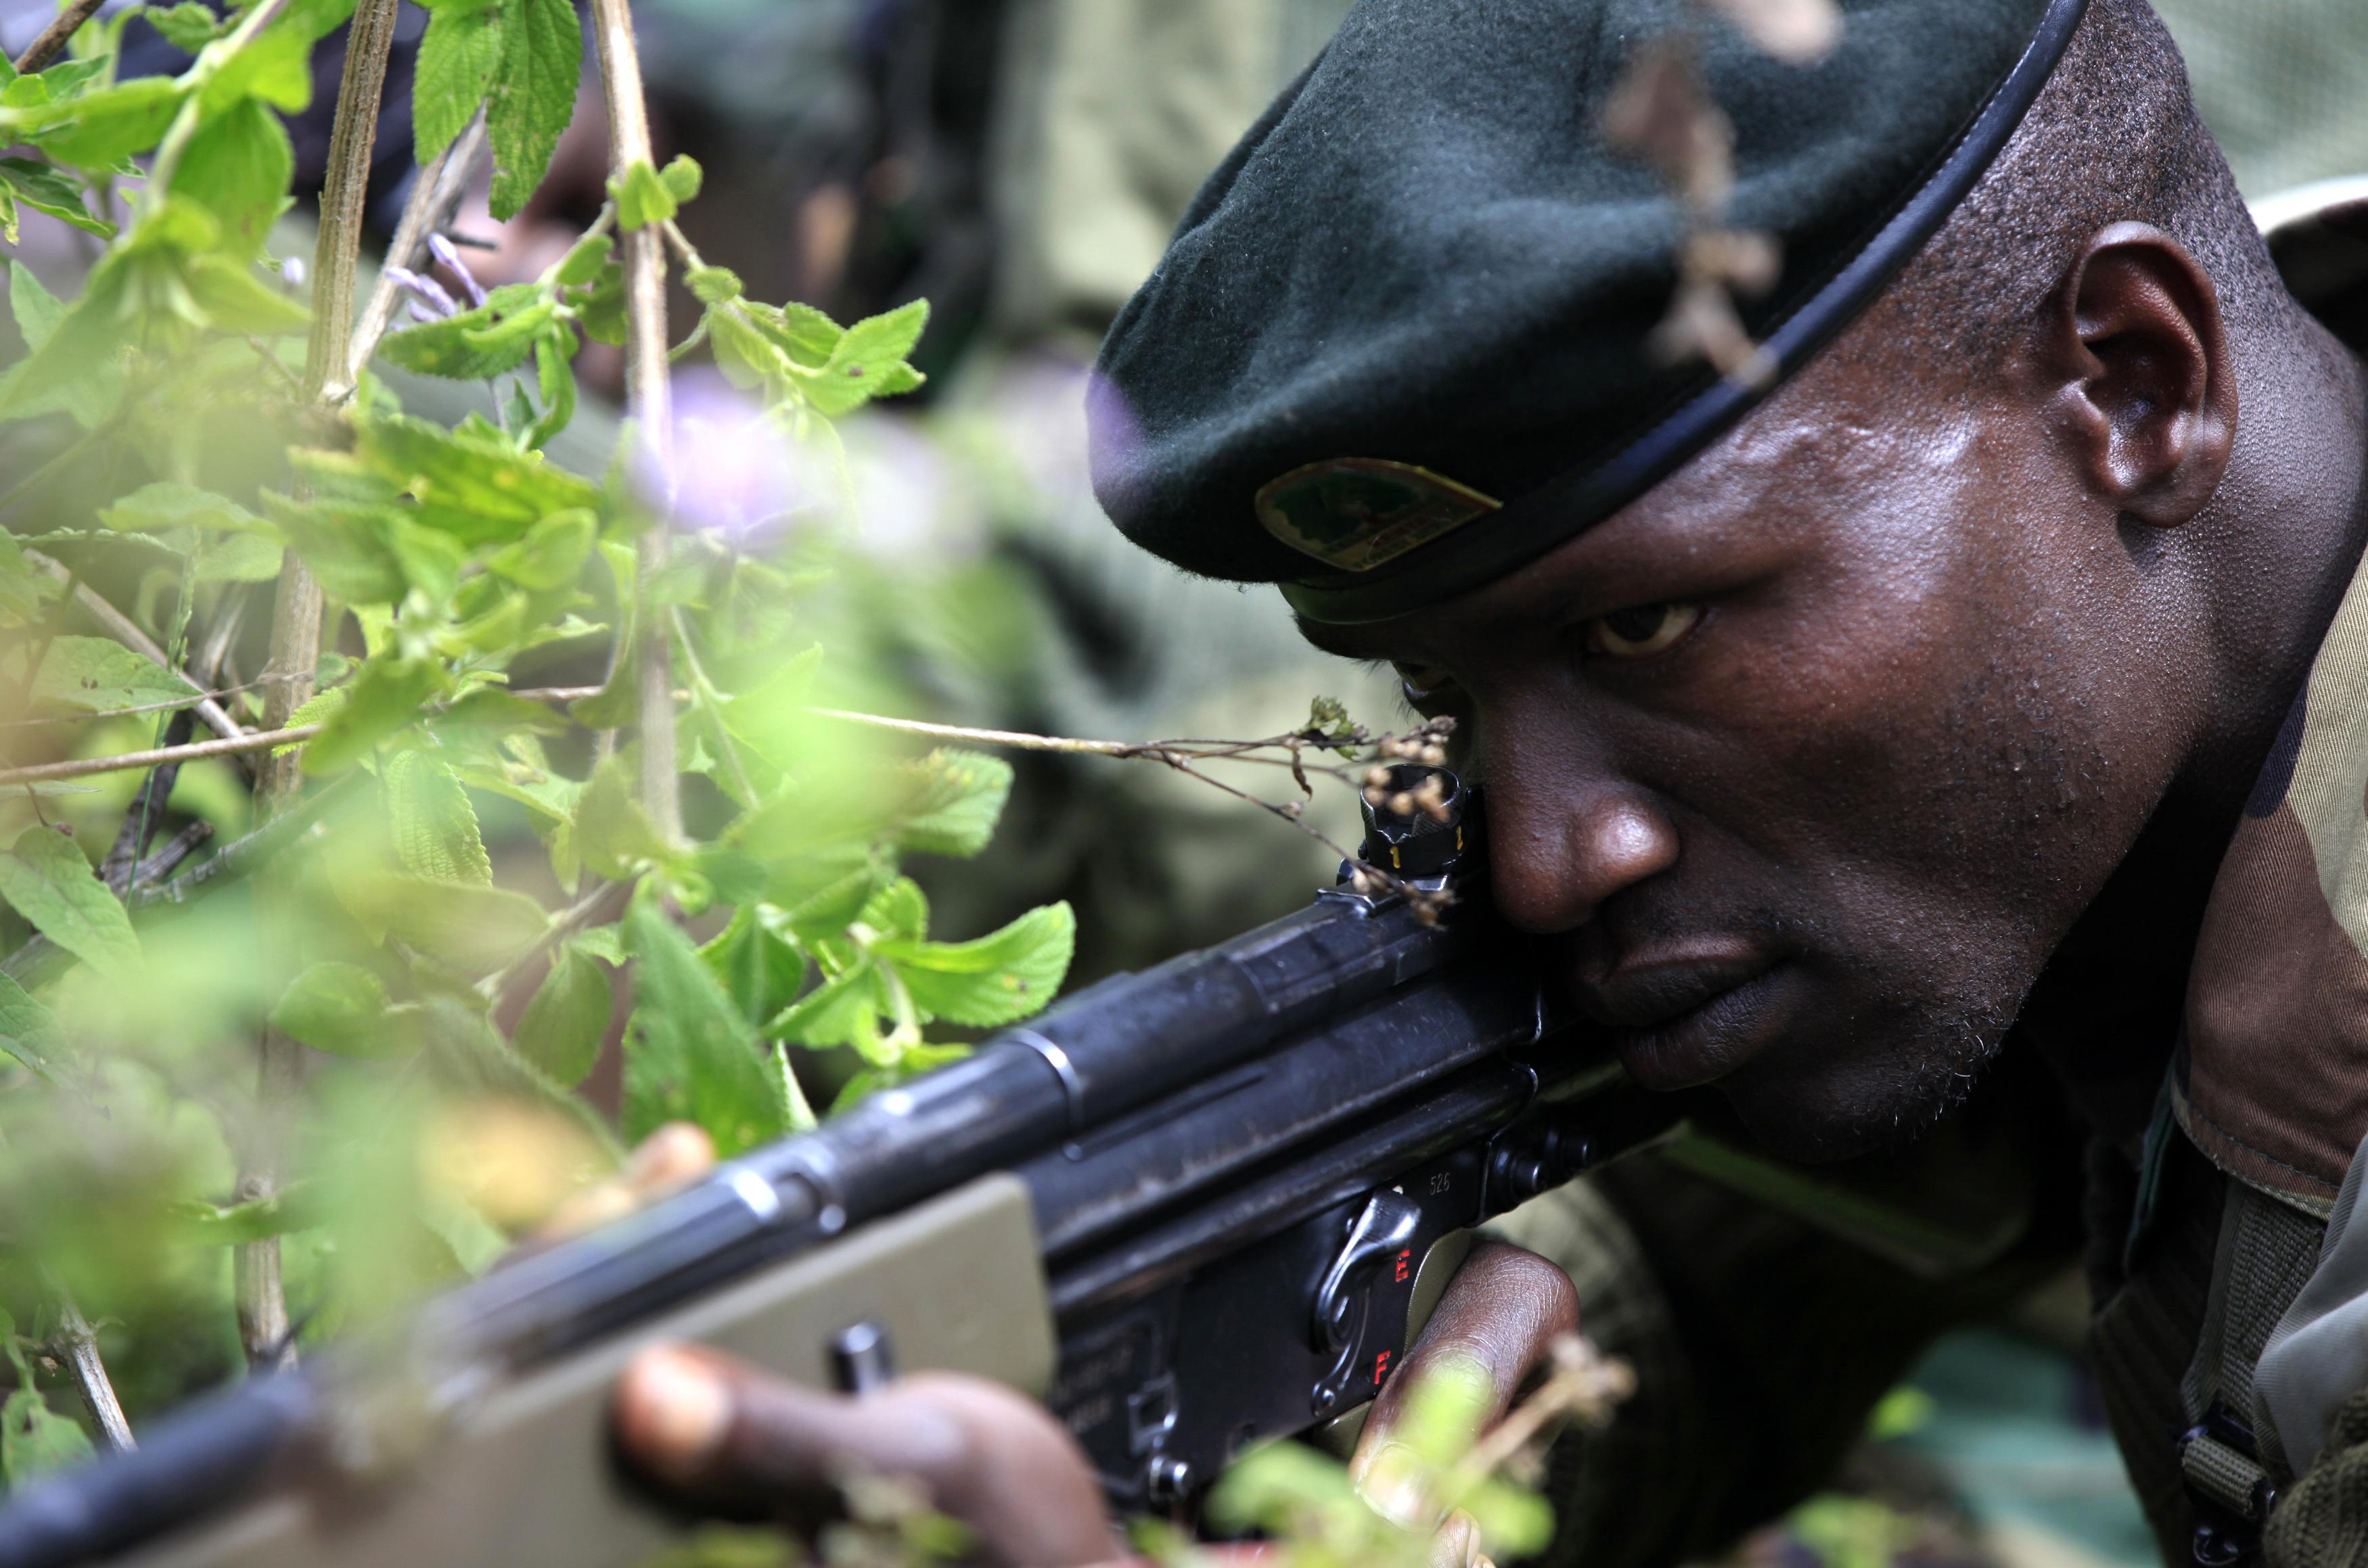 Anti-Poaching Forces Become Militarized To Protect Elephants, Rhinos In Africa